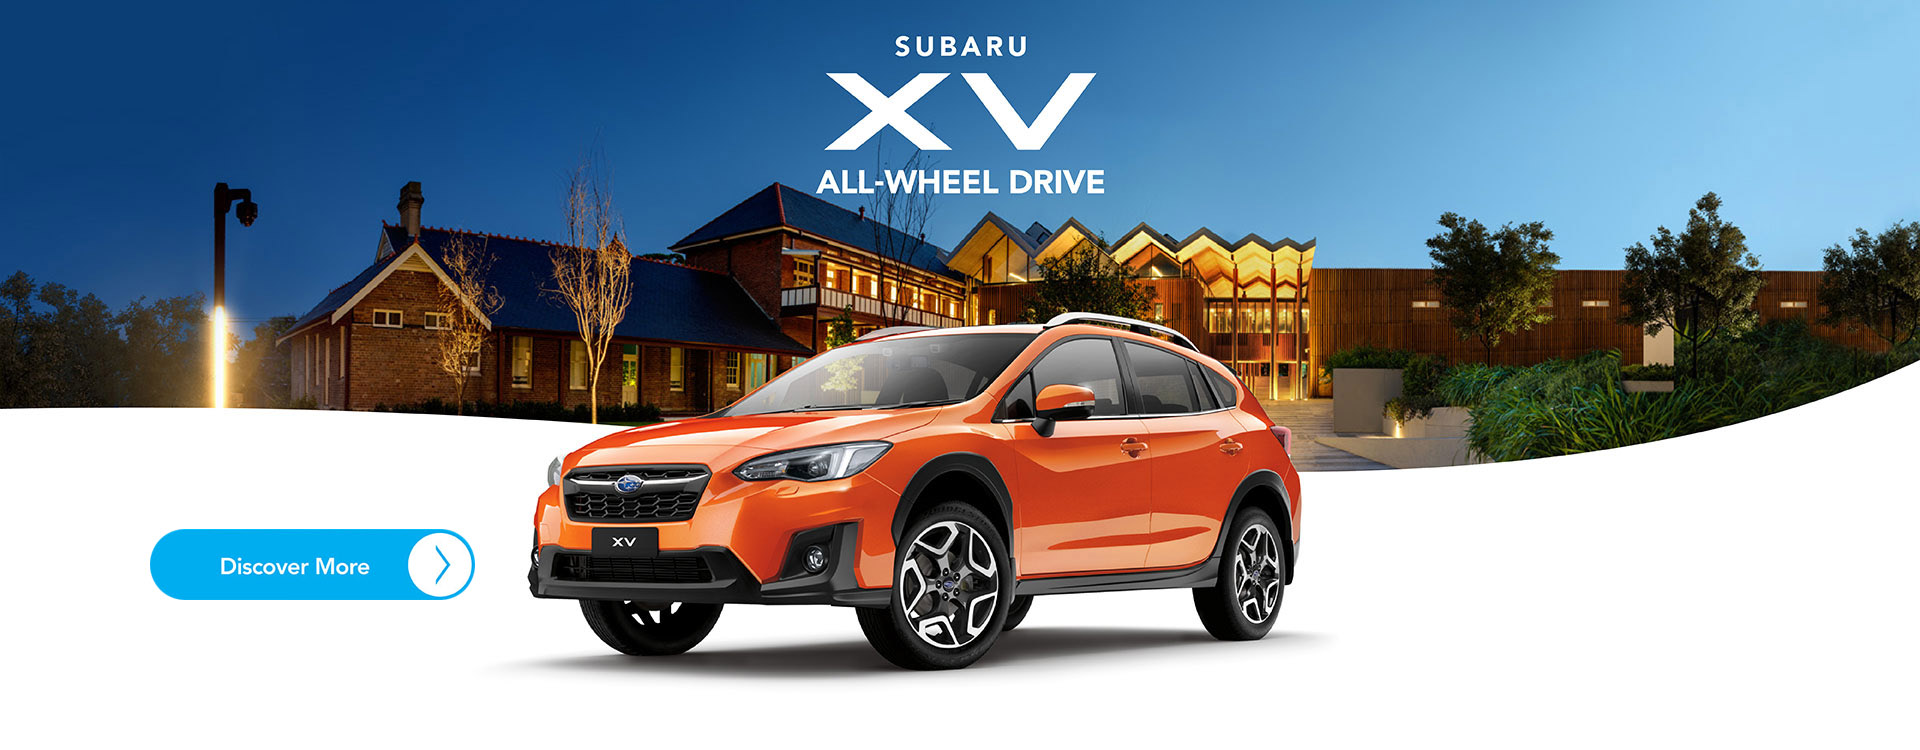 New Subaru XV, including Hybrid e-Boxer, now available at High Country Subaru, Cooma Snowy Mountains. Test Drive Today!